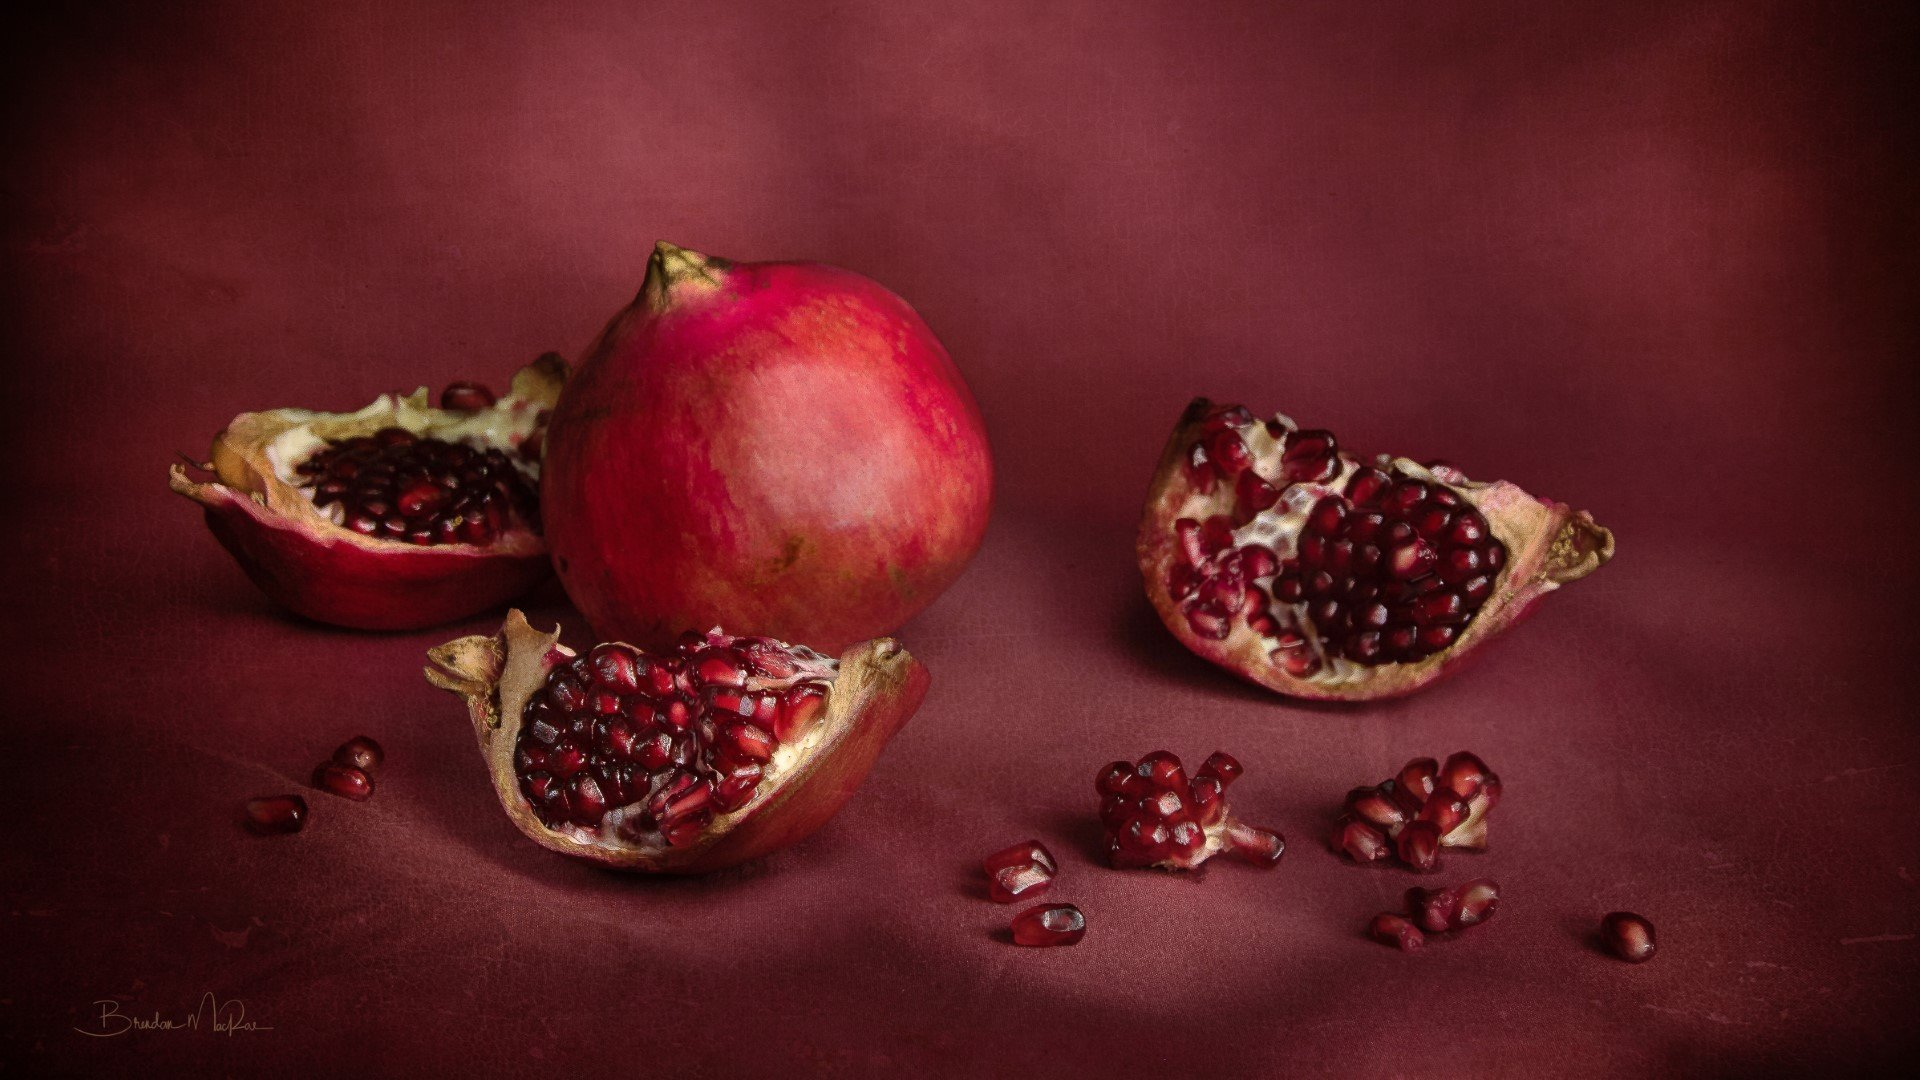 Pomegranate in red